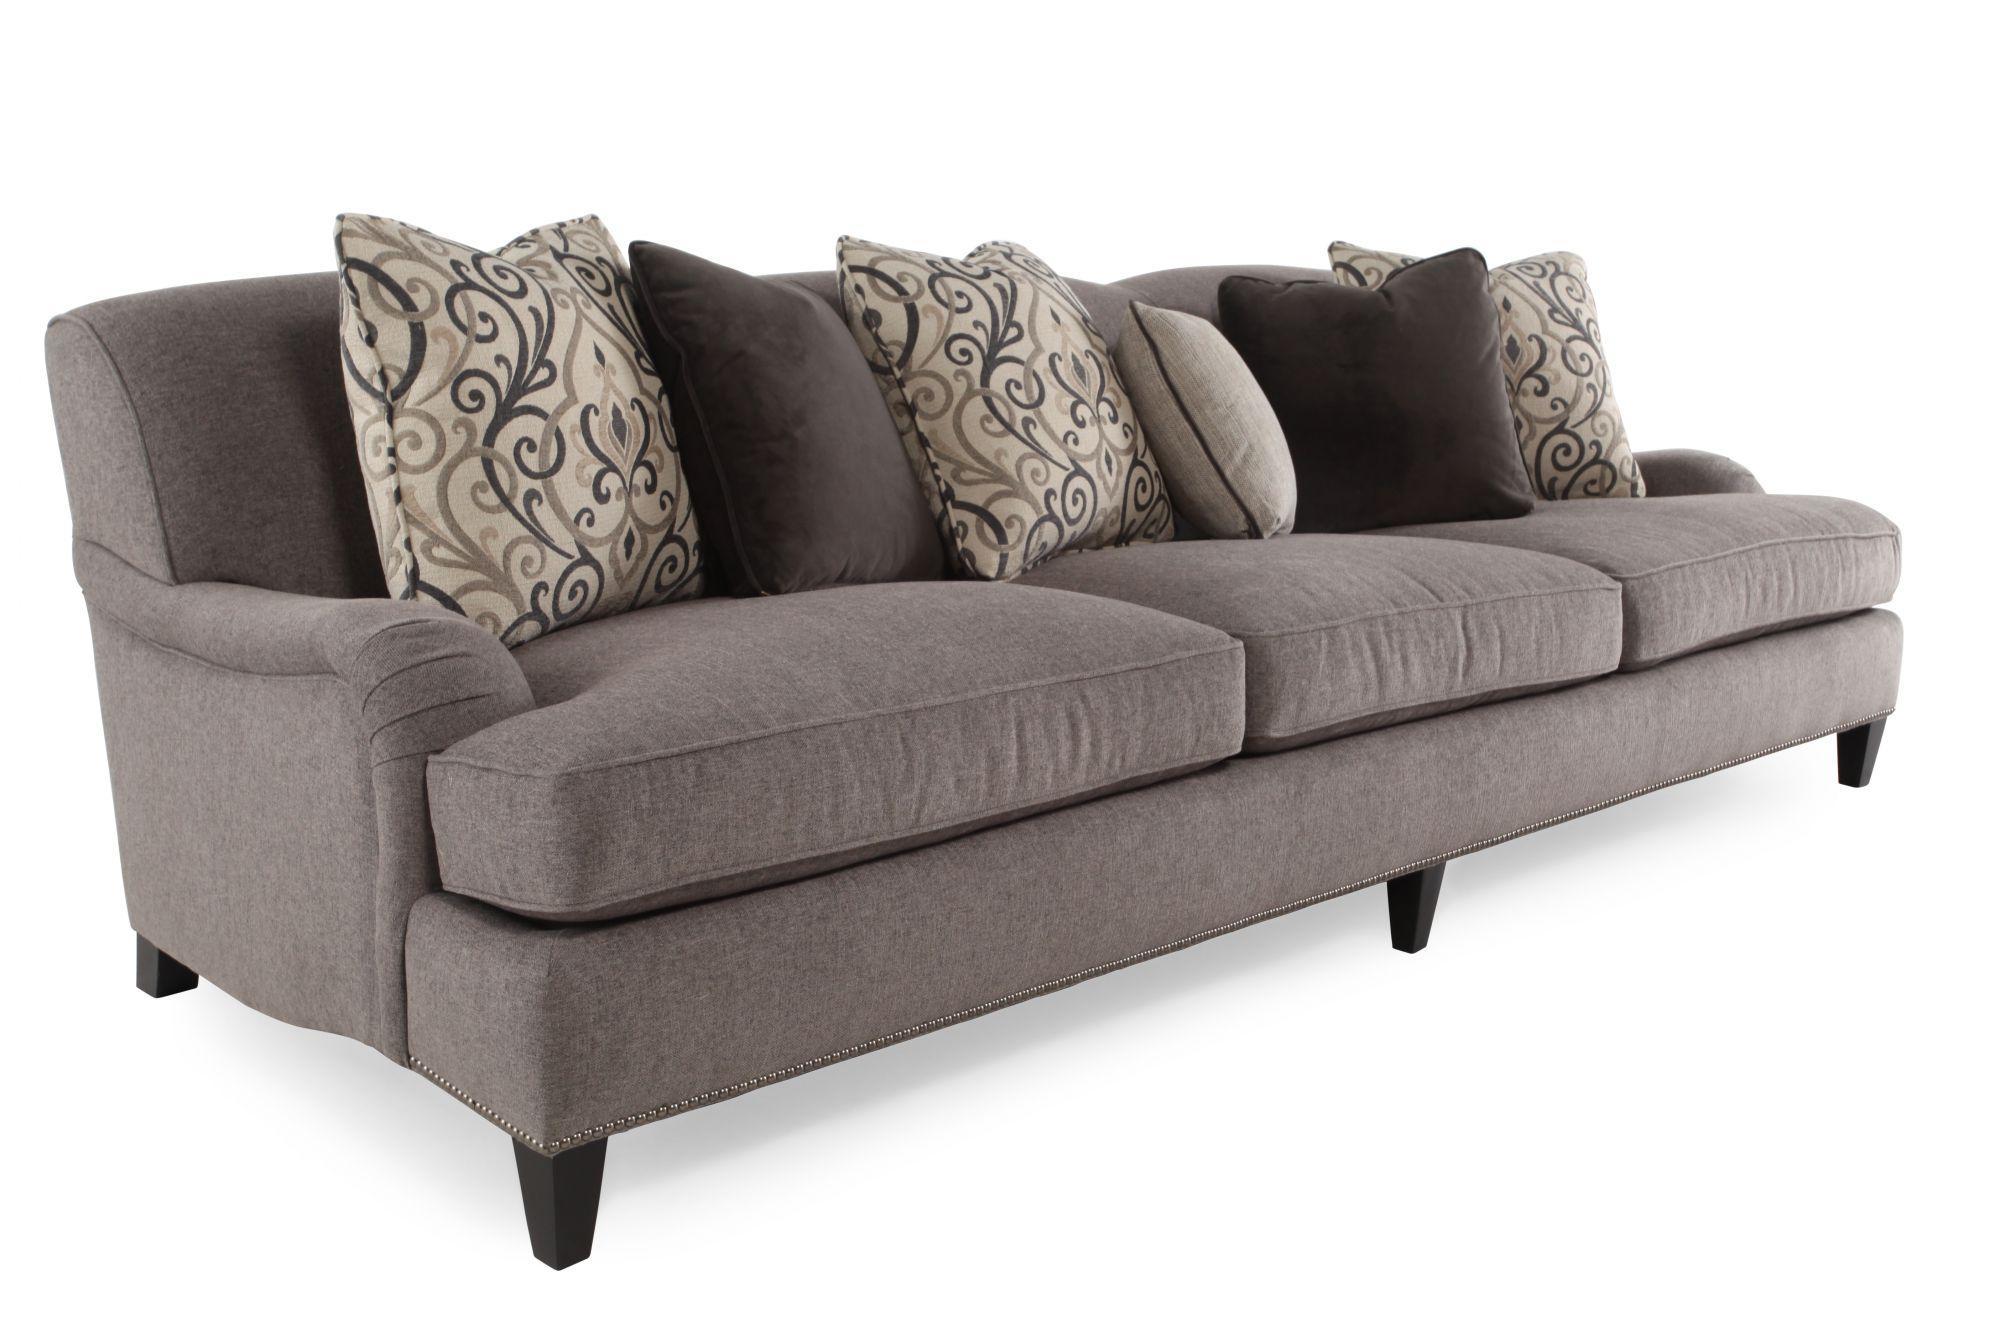 Furniture: Enchanting Bernhardt Sofa For Best Living Room With Bernhardt Sofas (View 13 of 20)